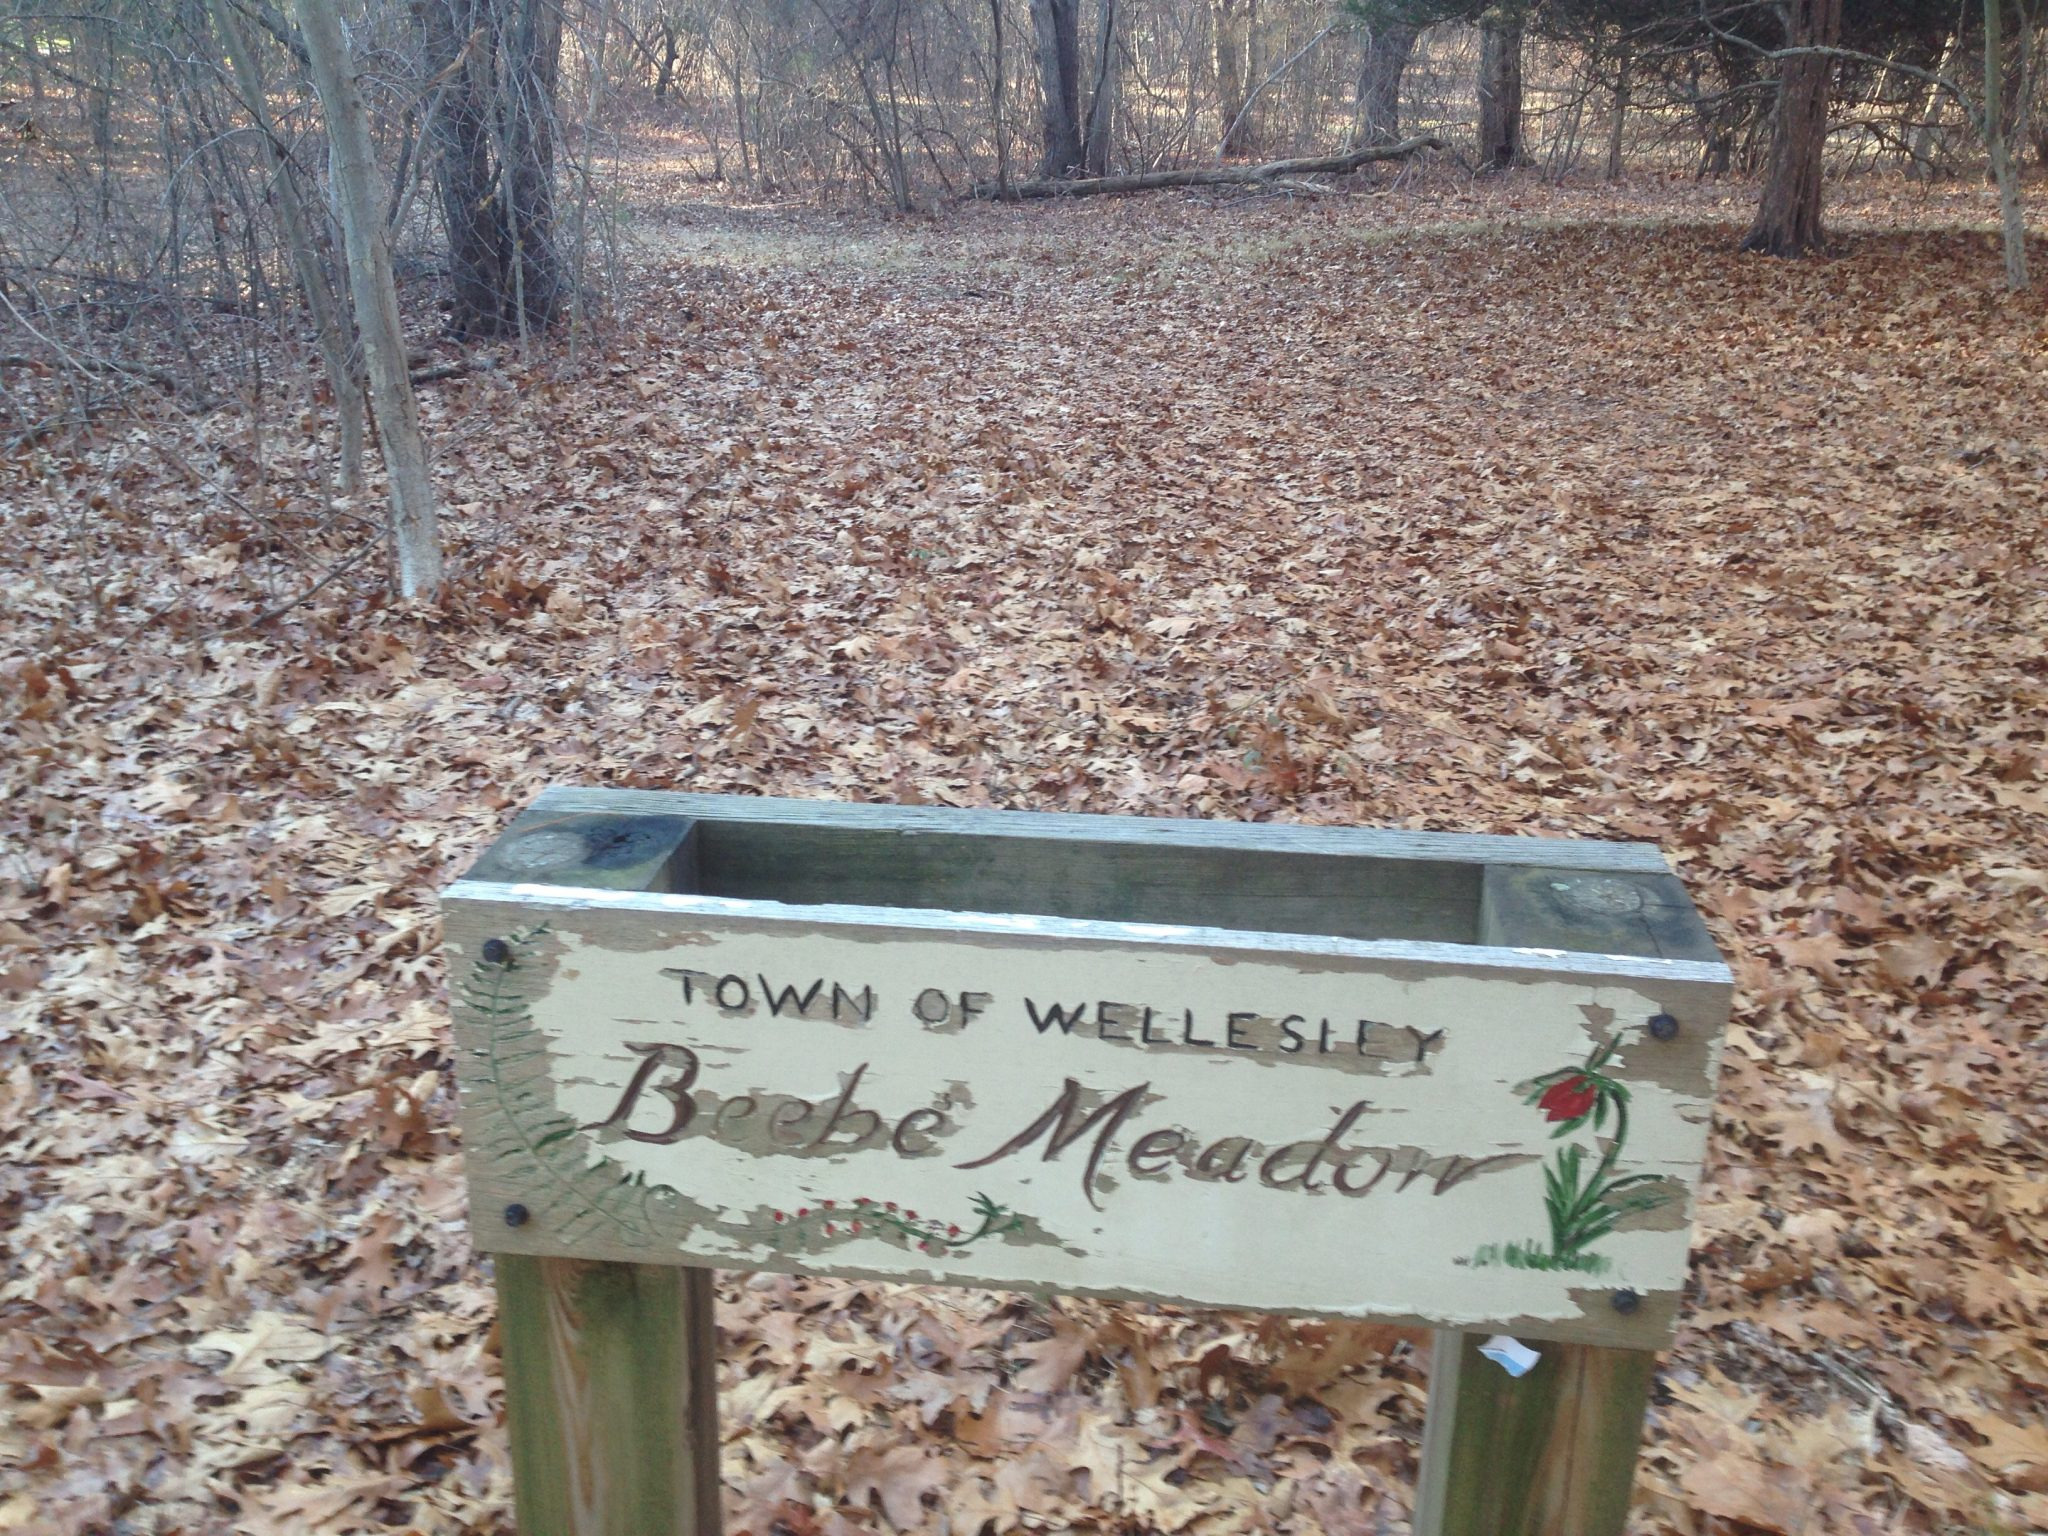 beebe meadow sign